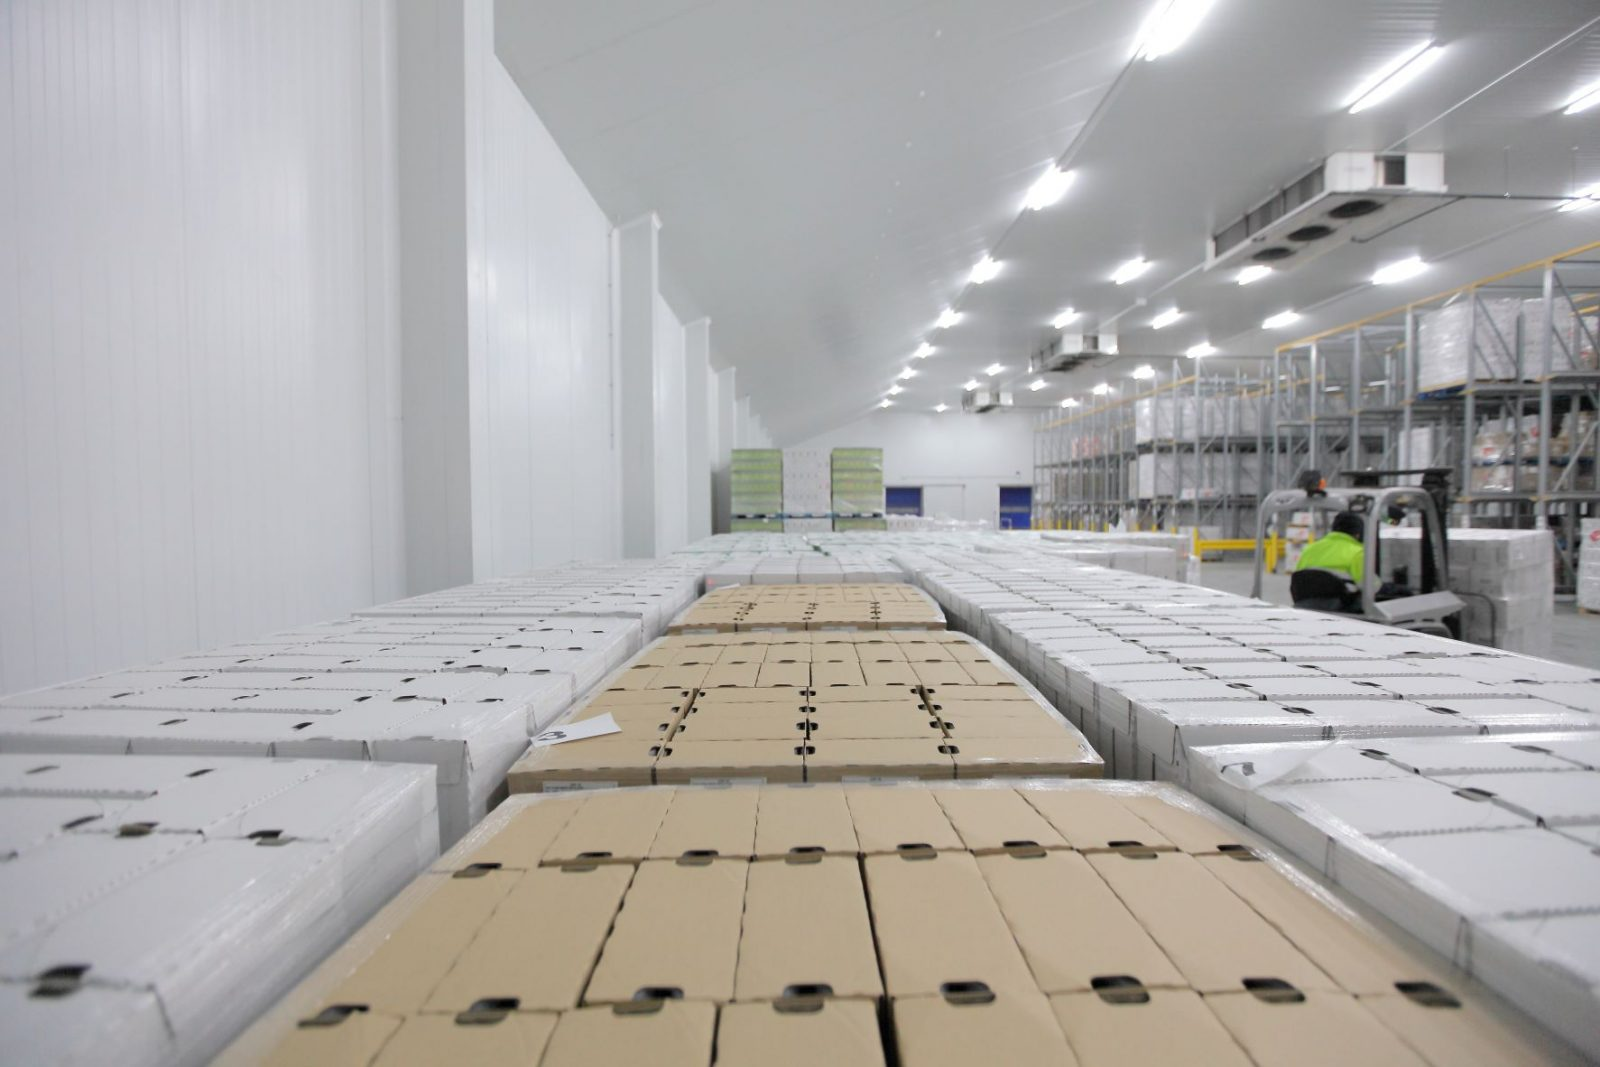 Image of cold storage facility.